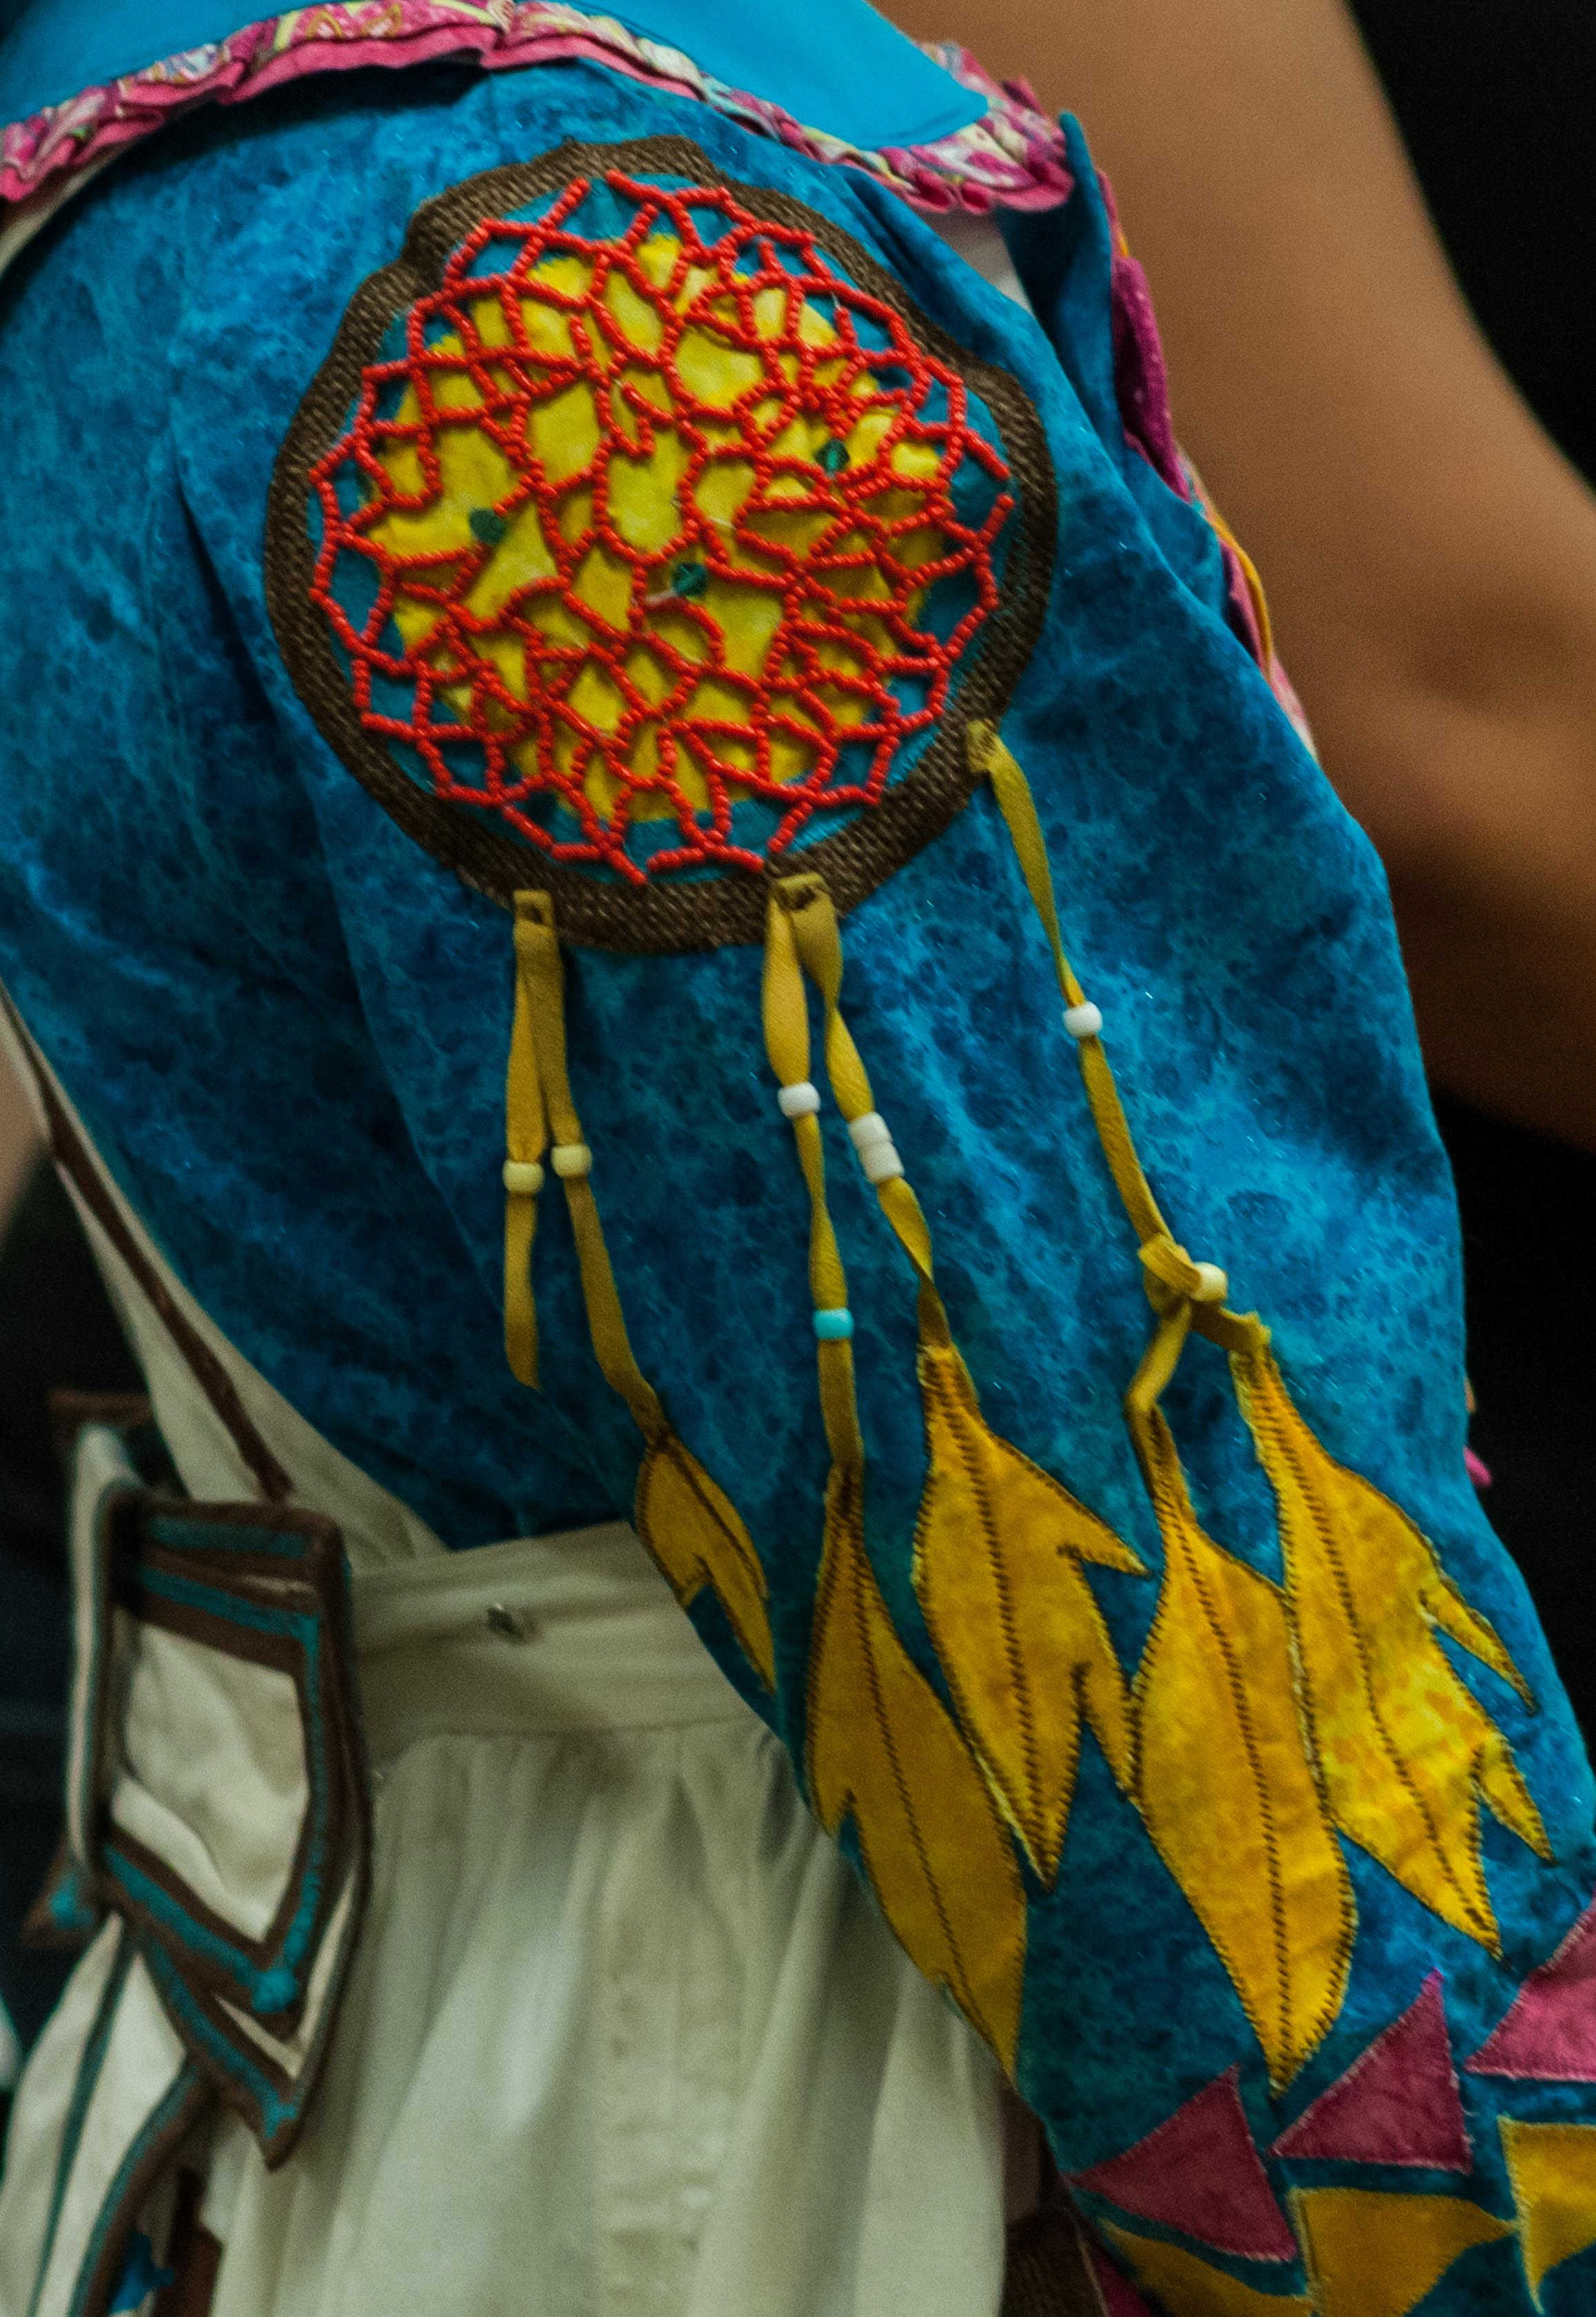 FORSCOM/USARC hosts National American Indian Heritage event